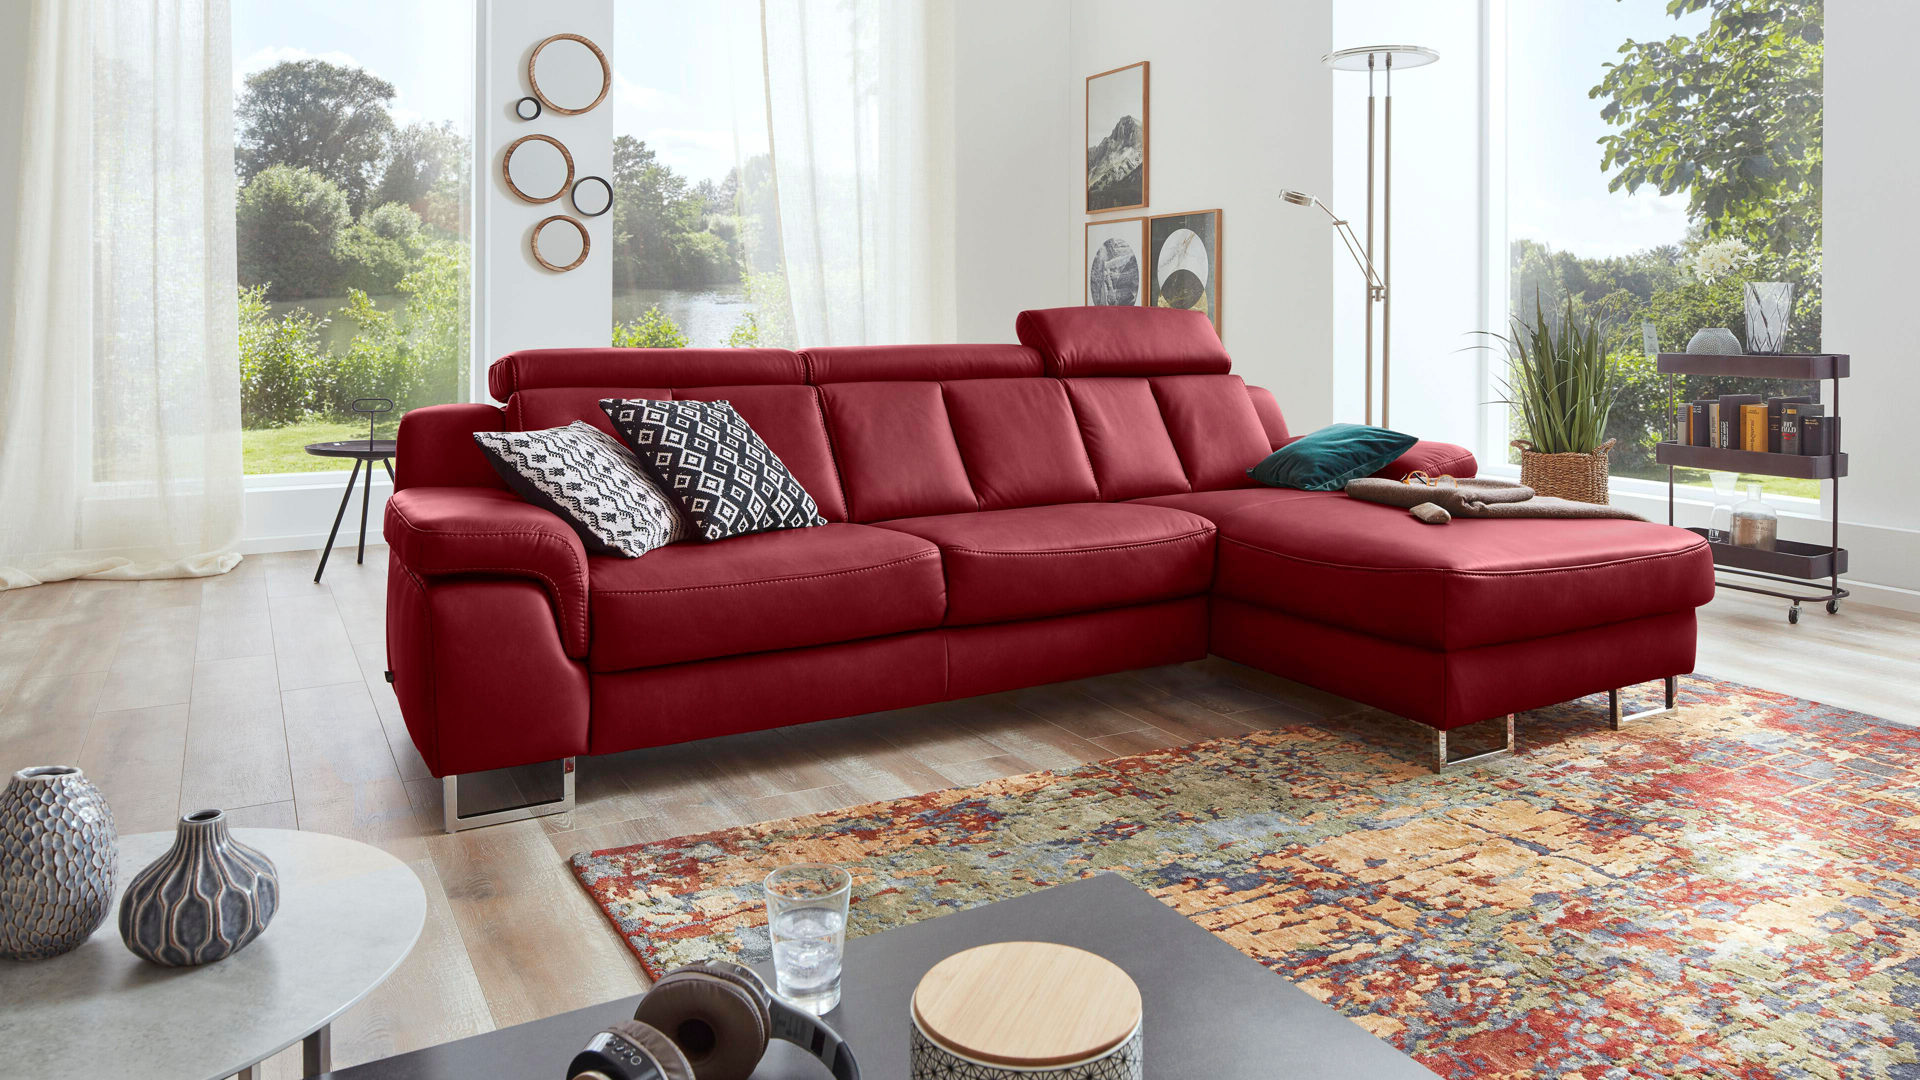 Ecksofa Leder Mit Sessel Interliving Sofa Serie 4050 Eckkombination Rotes Longlife